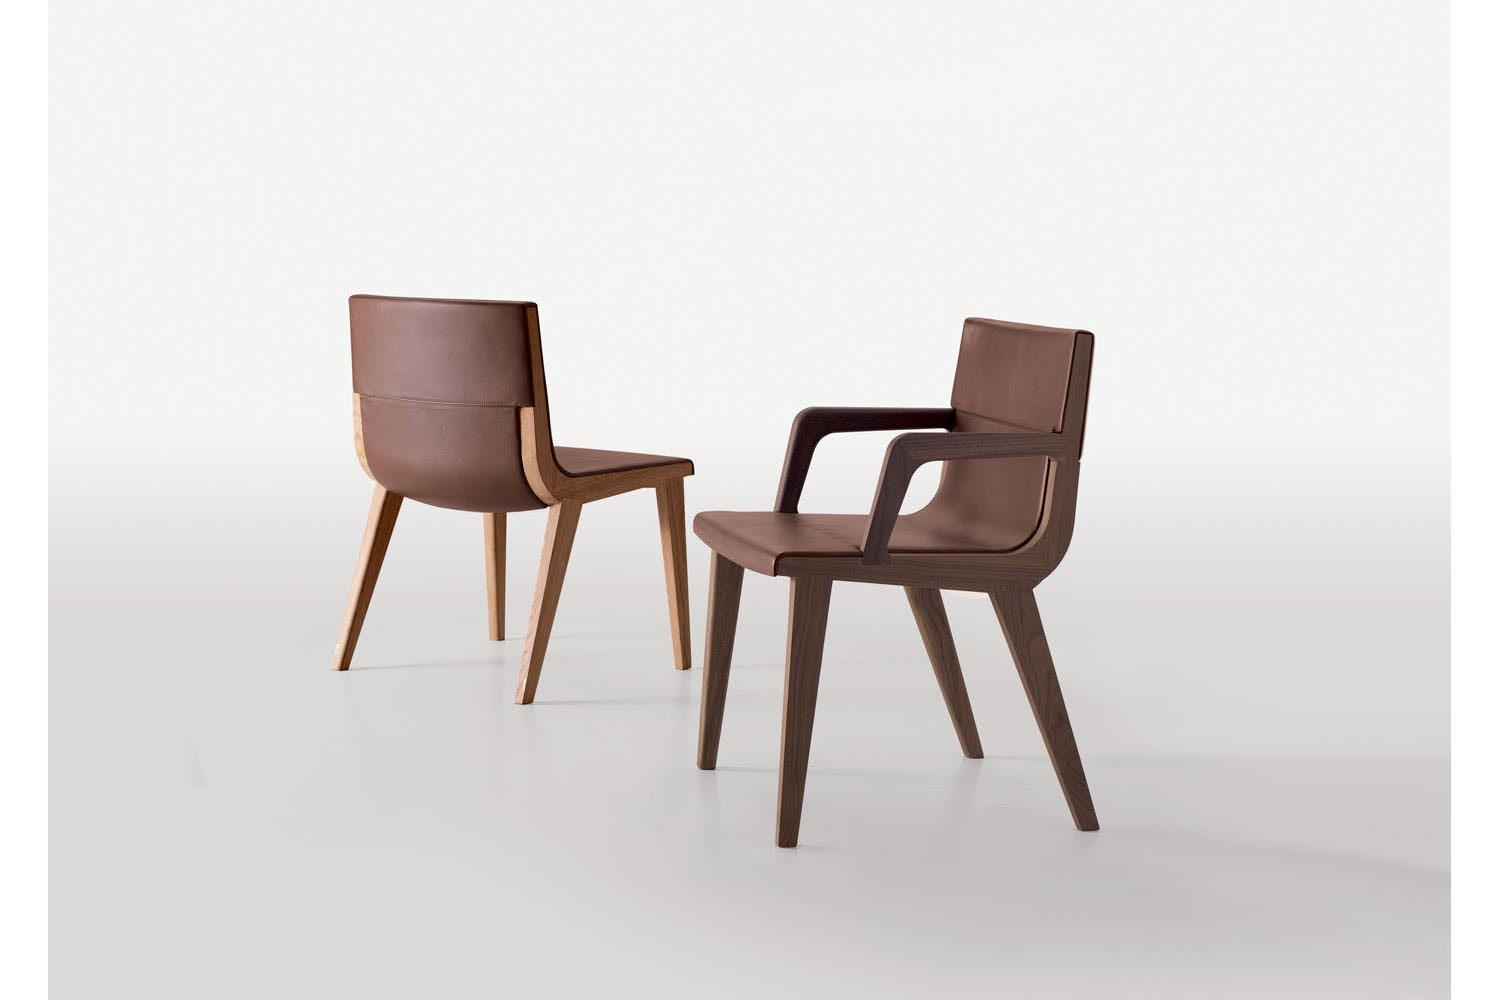 Acanto Chair by Antonio Citterio for Maxalto